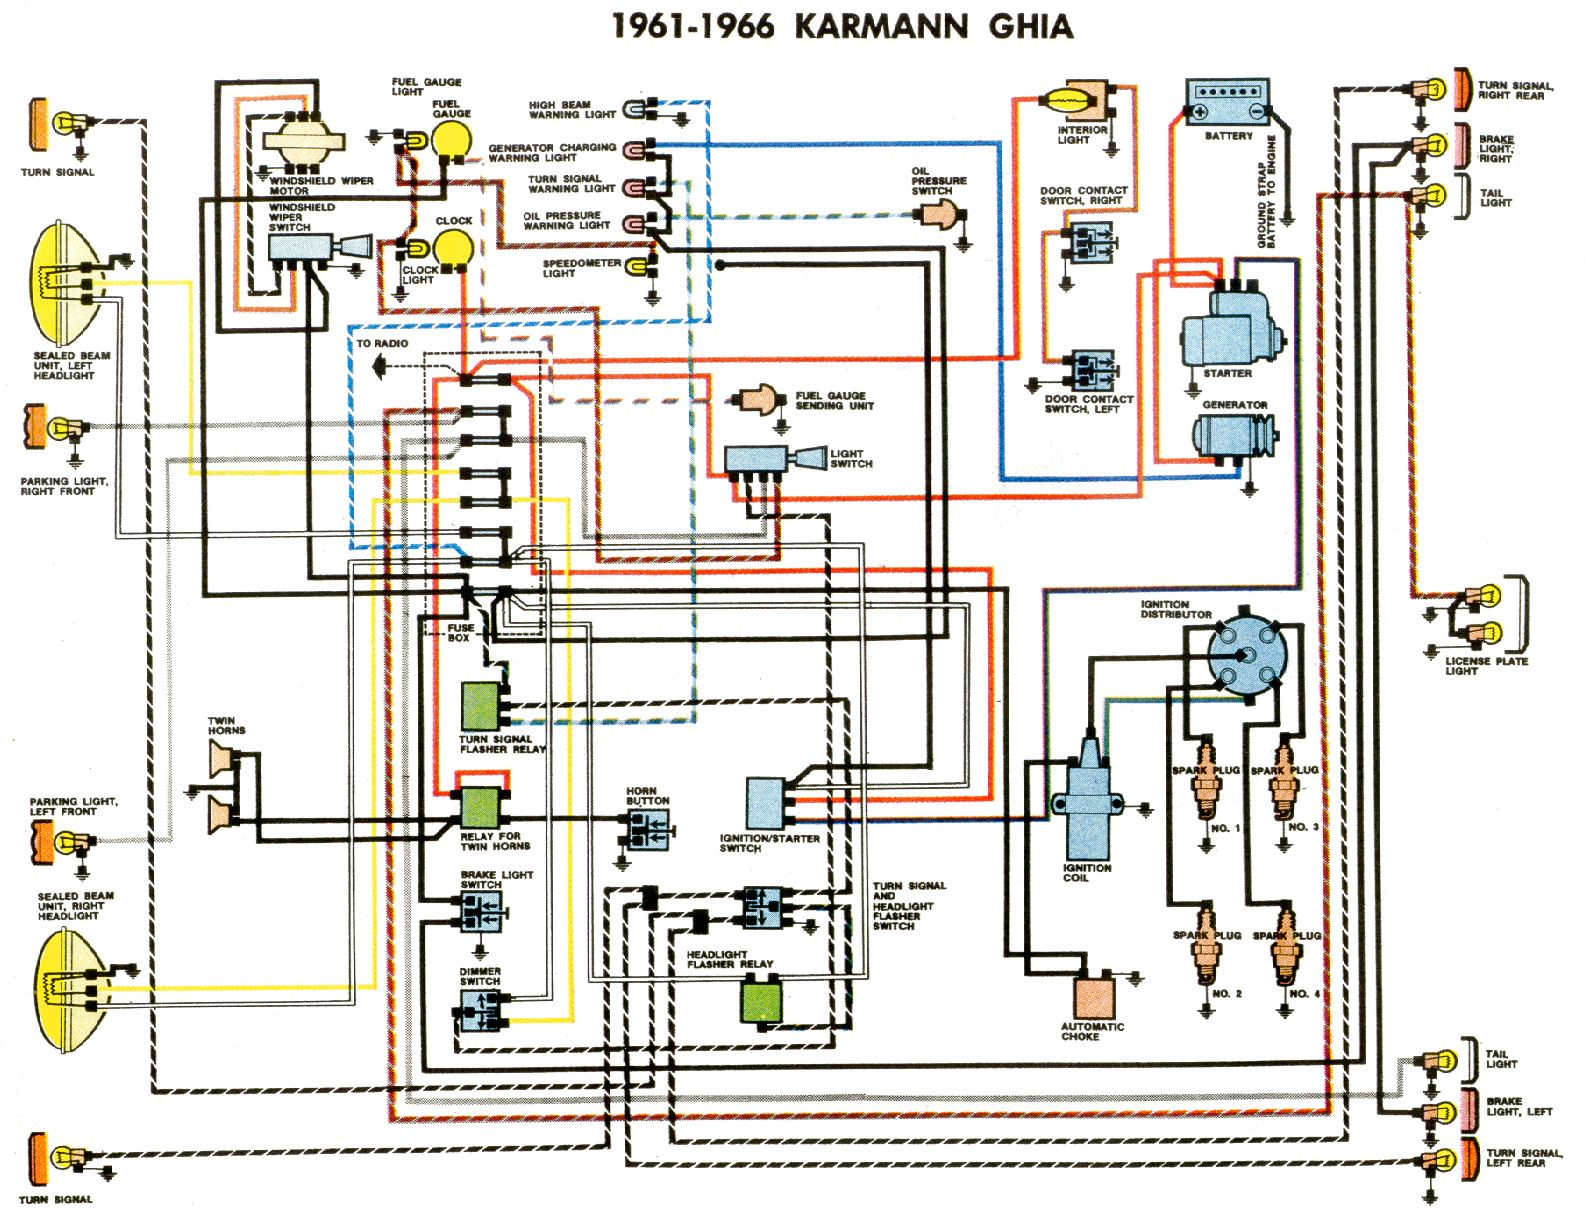 585010?resize\\\\\\\\\\\\\\\=665%2C513\\\\\\\\\\\\\\\&ssl\\\\\\\\\\\\\\\=1 amazing 914 wiring diagram photos wiring schematic tvservice us rotax 912 wiring schematic at honlapkeszites.co